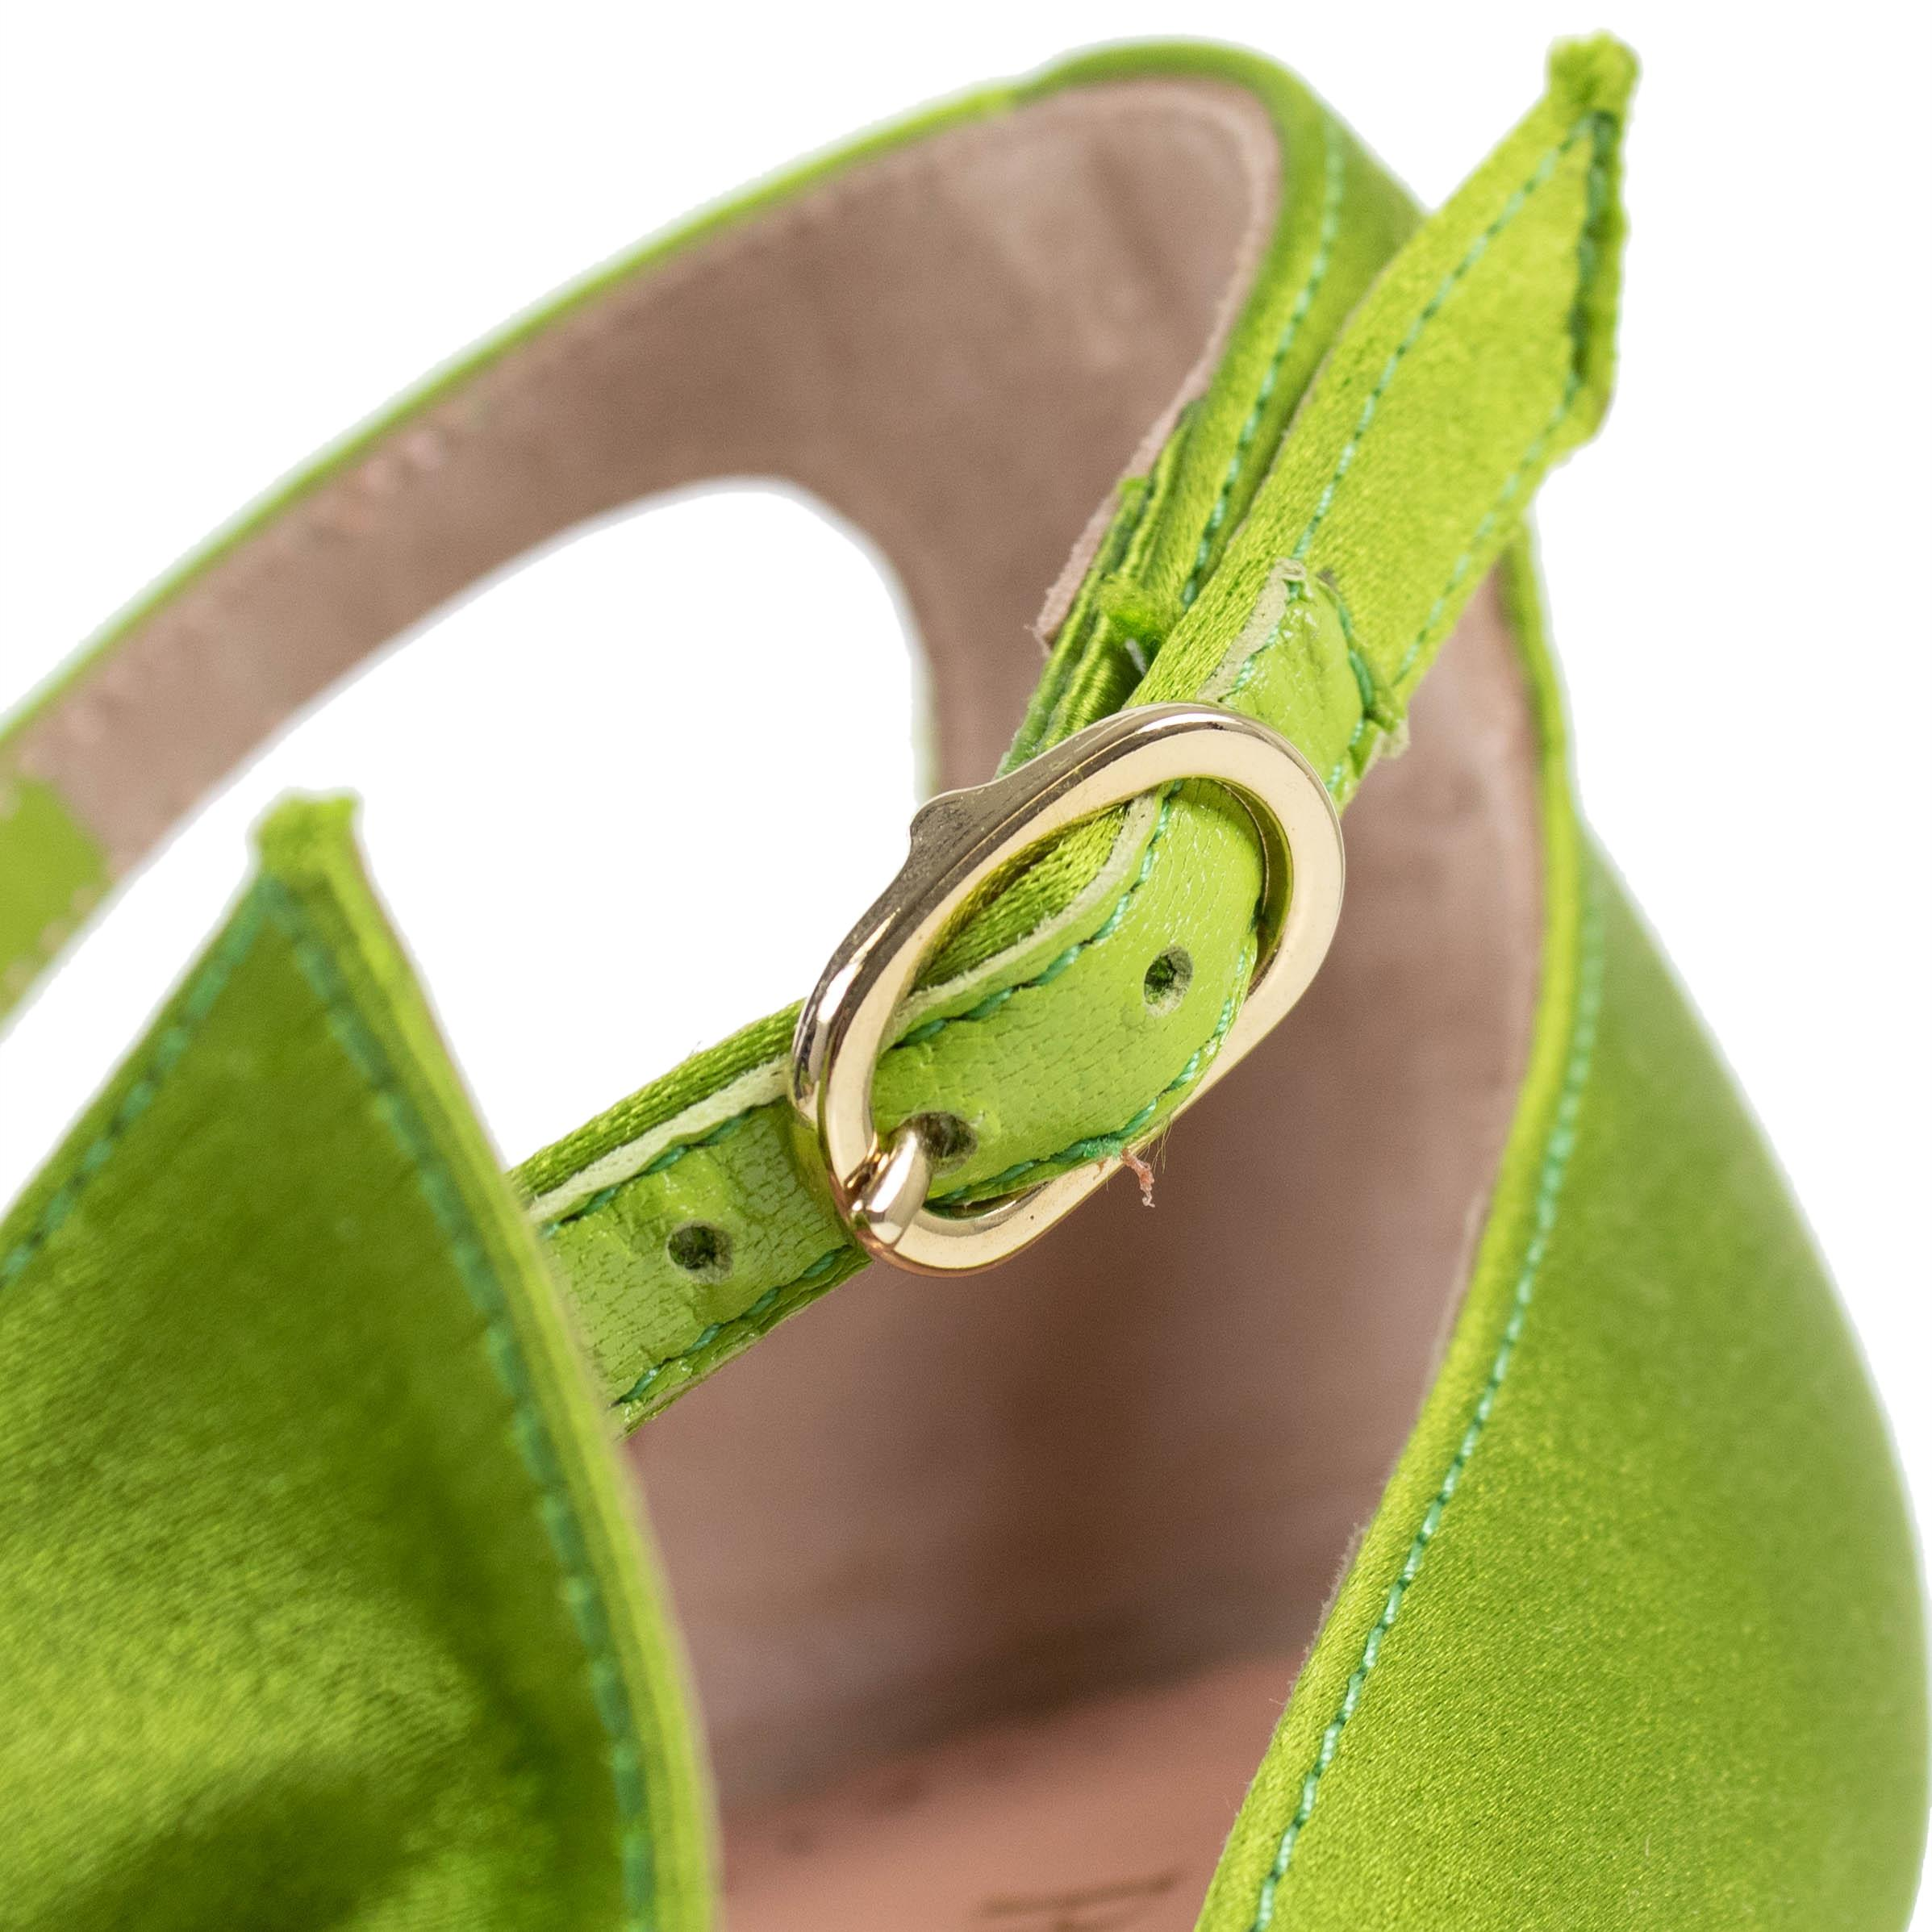 924ad5c4b306 ... RED Valentino Green Green Green With Bow Leather Pumps Size US 7 Regular  (M